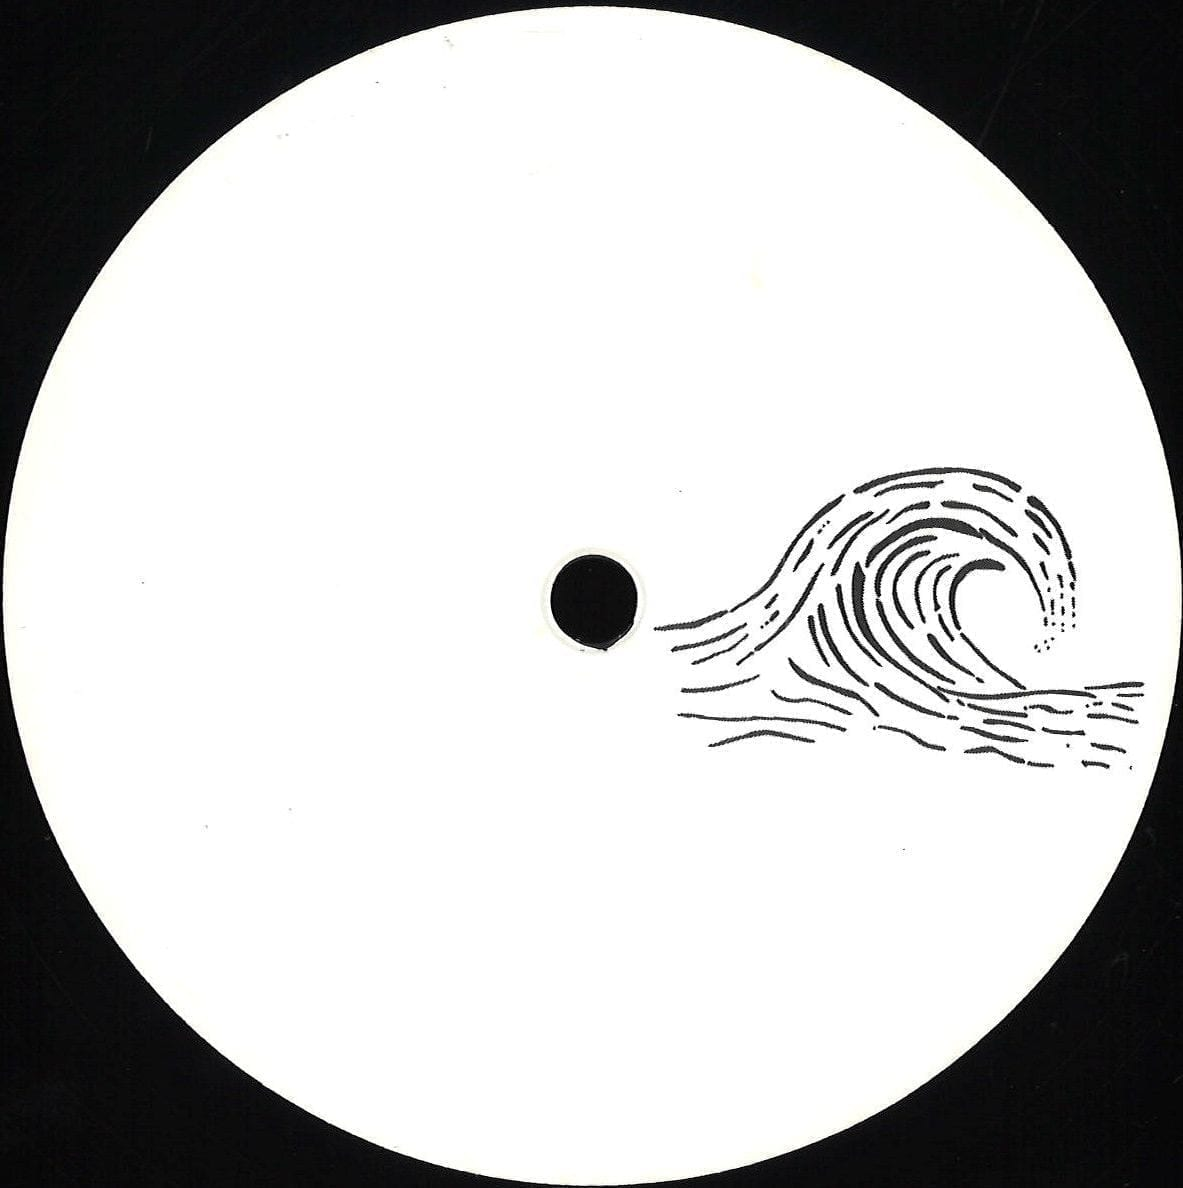 Cerec - apa001 [apa by Unic] front